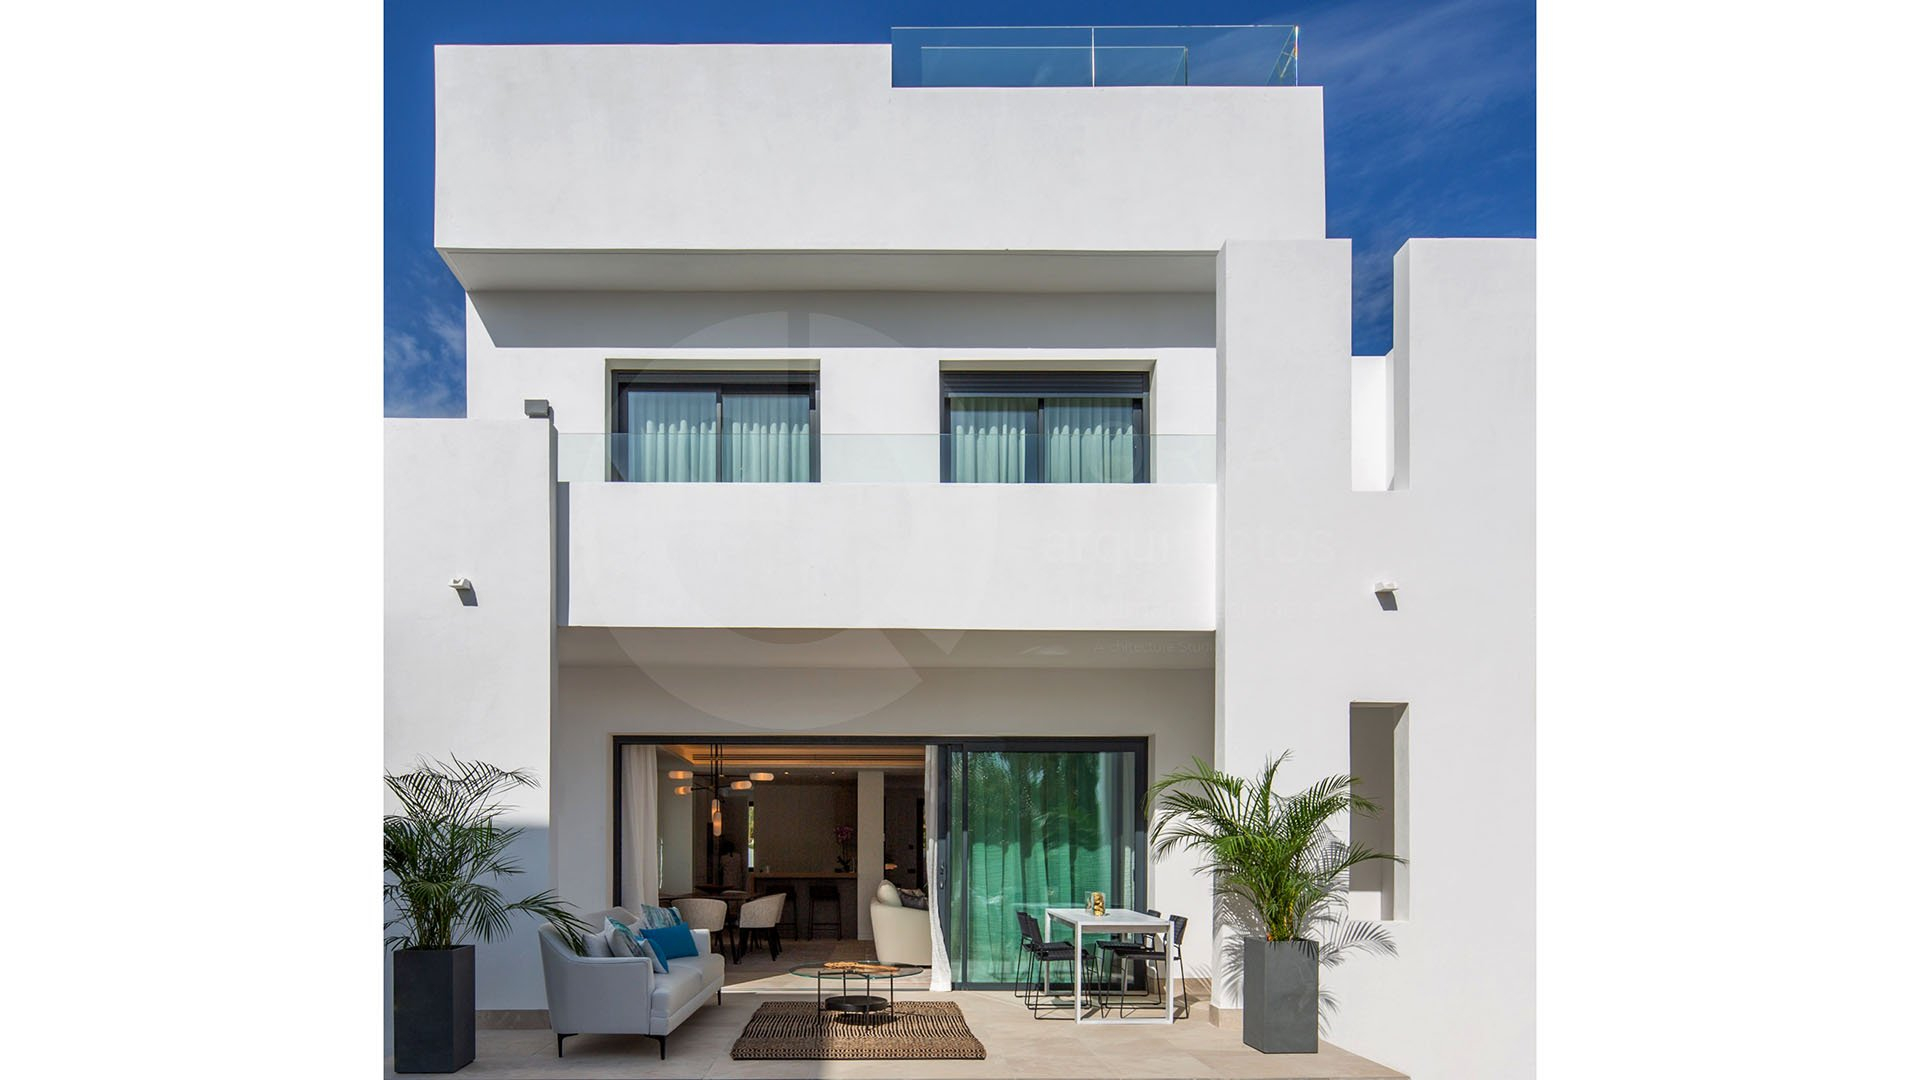 Reserva del Conde: Townhouses in the heart of the golf valley in Marbella